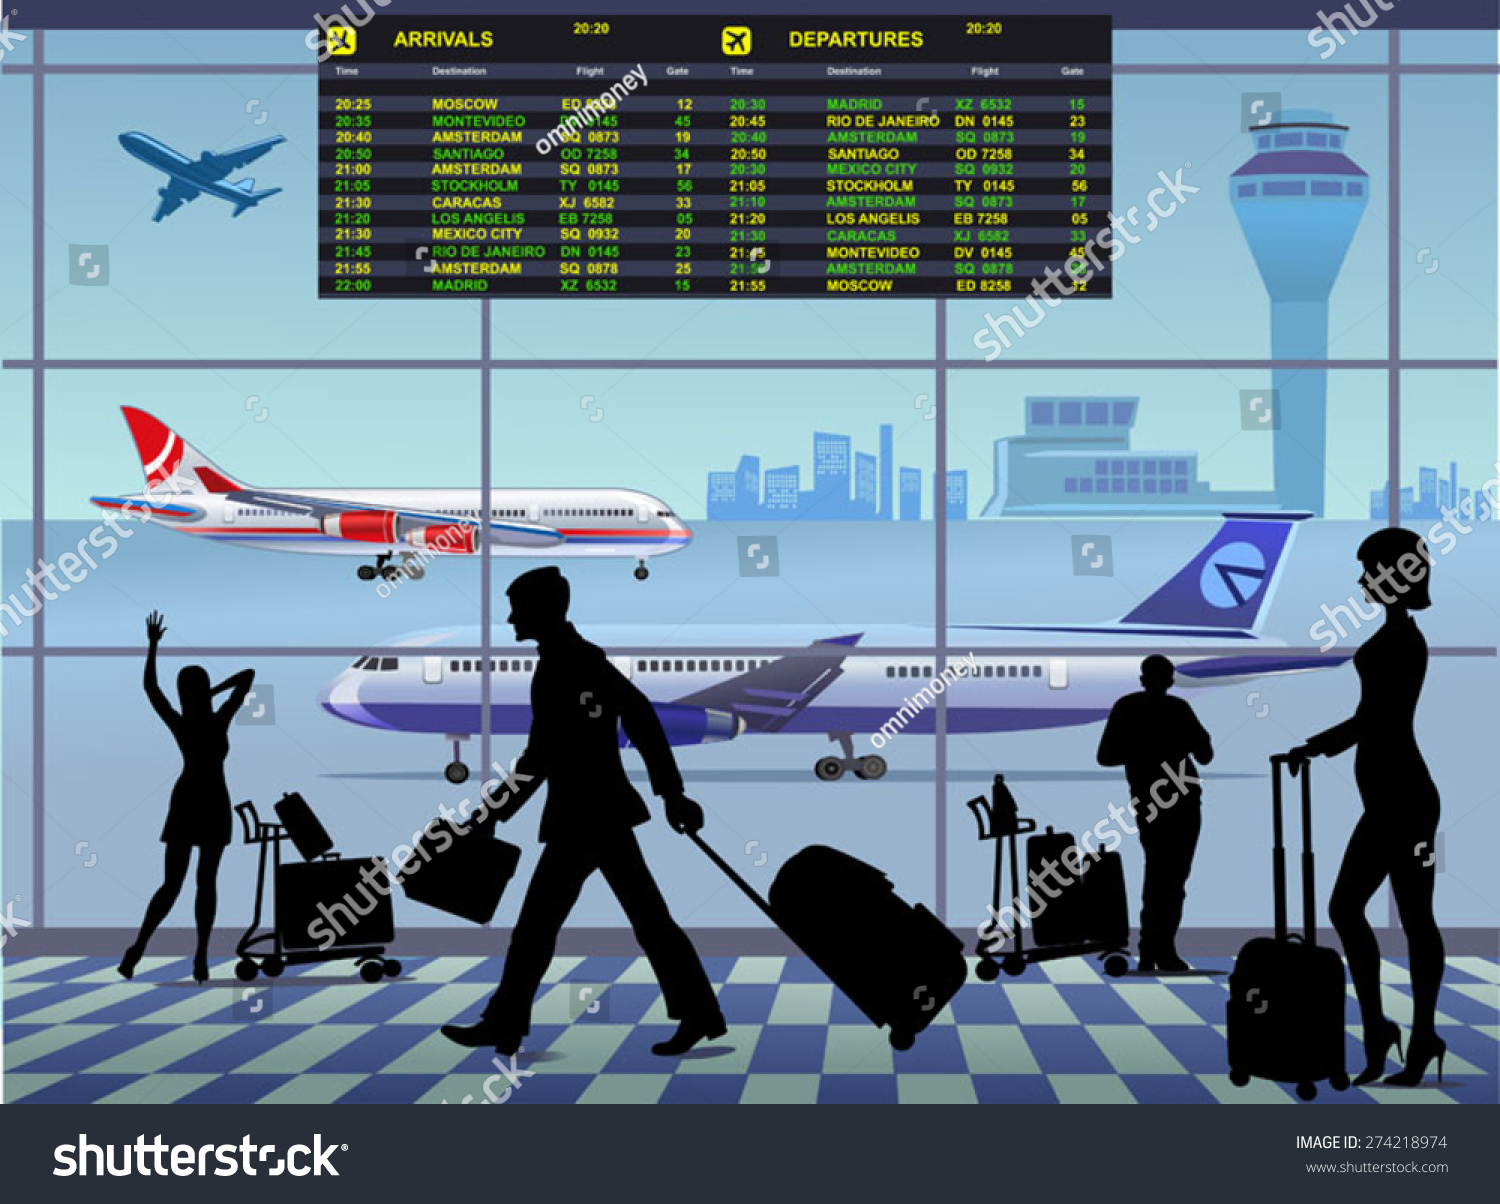 airport gate clipart - photo #44